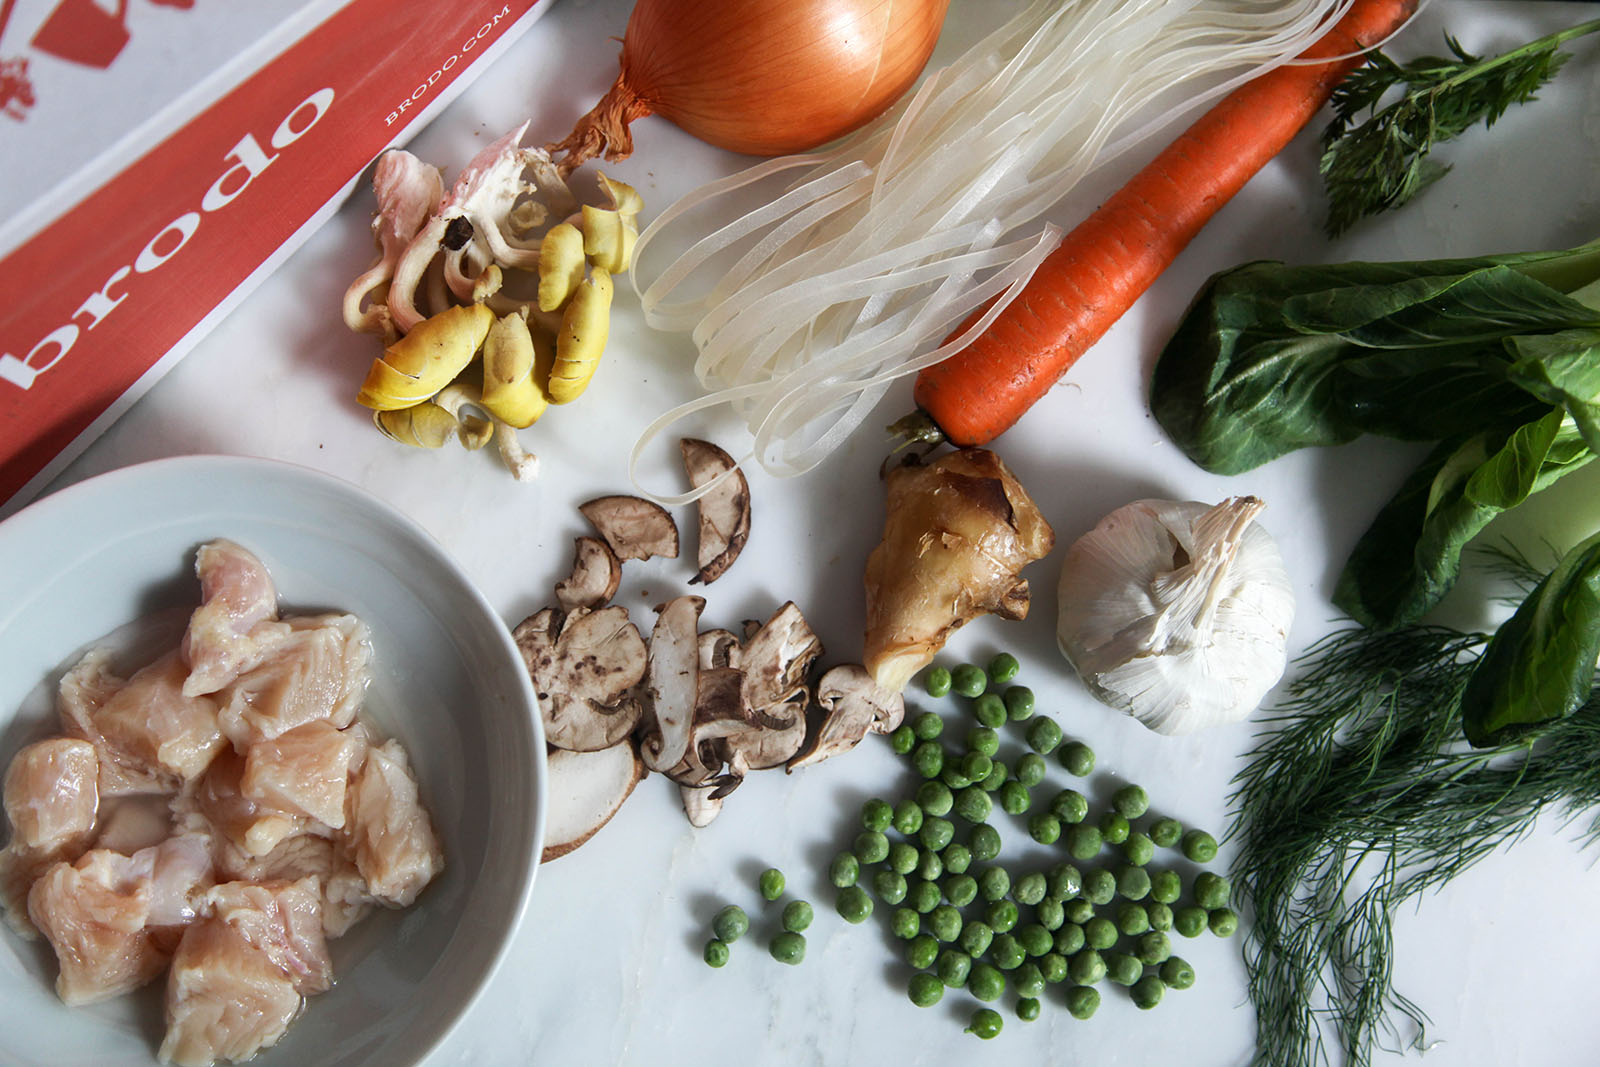 Ingredients for Easy Nutritious Chicken Vegetable Soup with Noodles in Bone Broth. Have it to treat covid-19 at home.